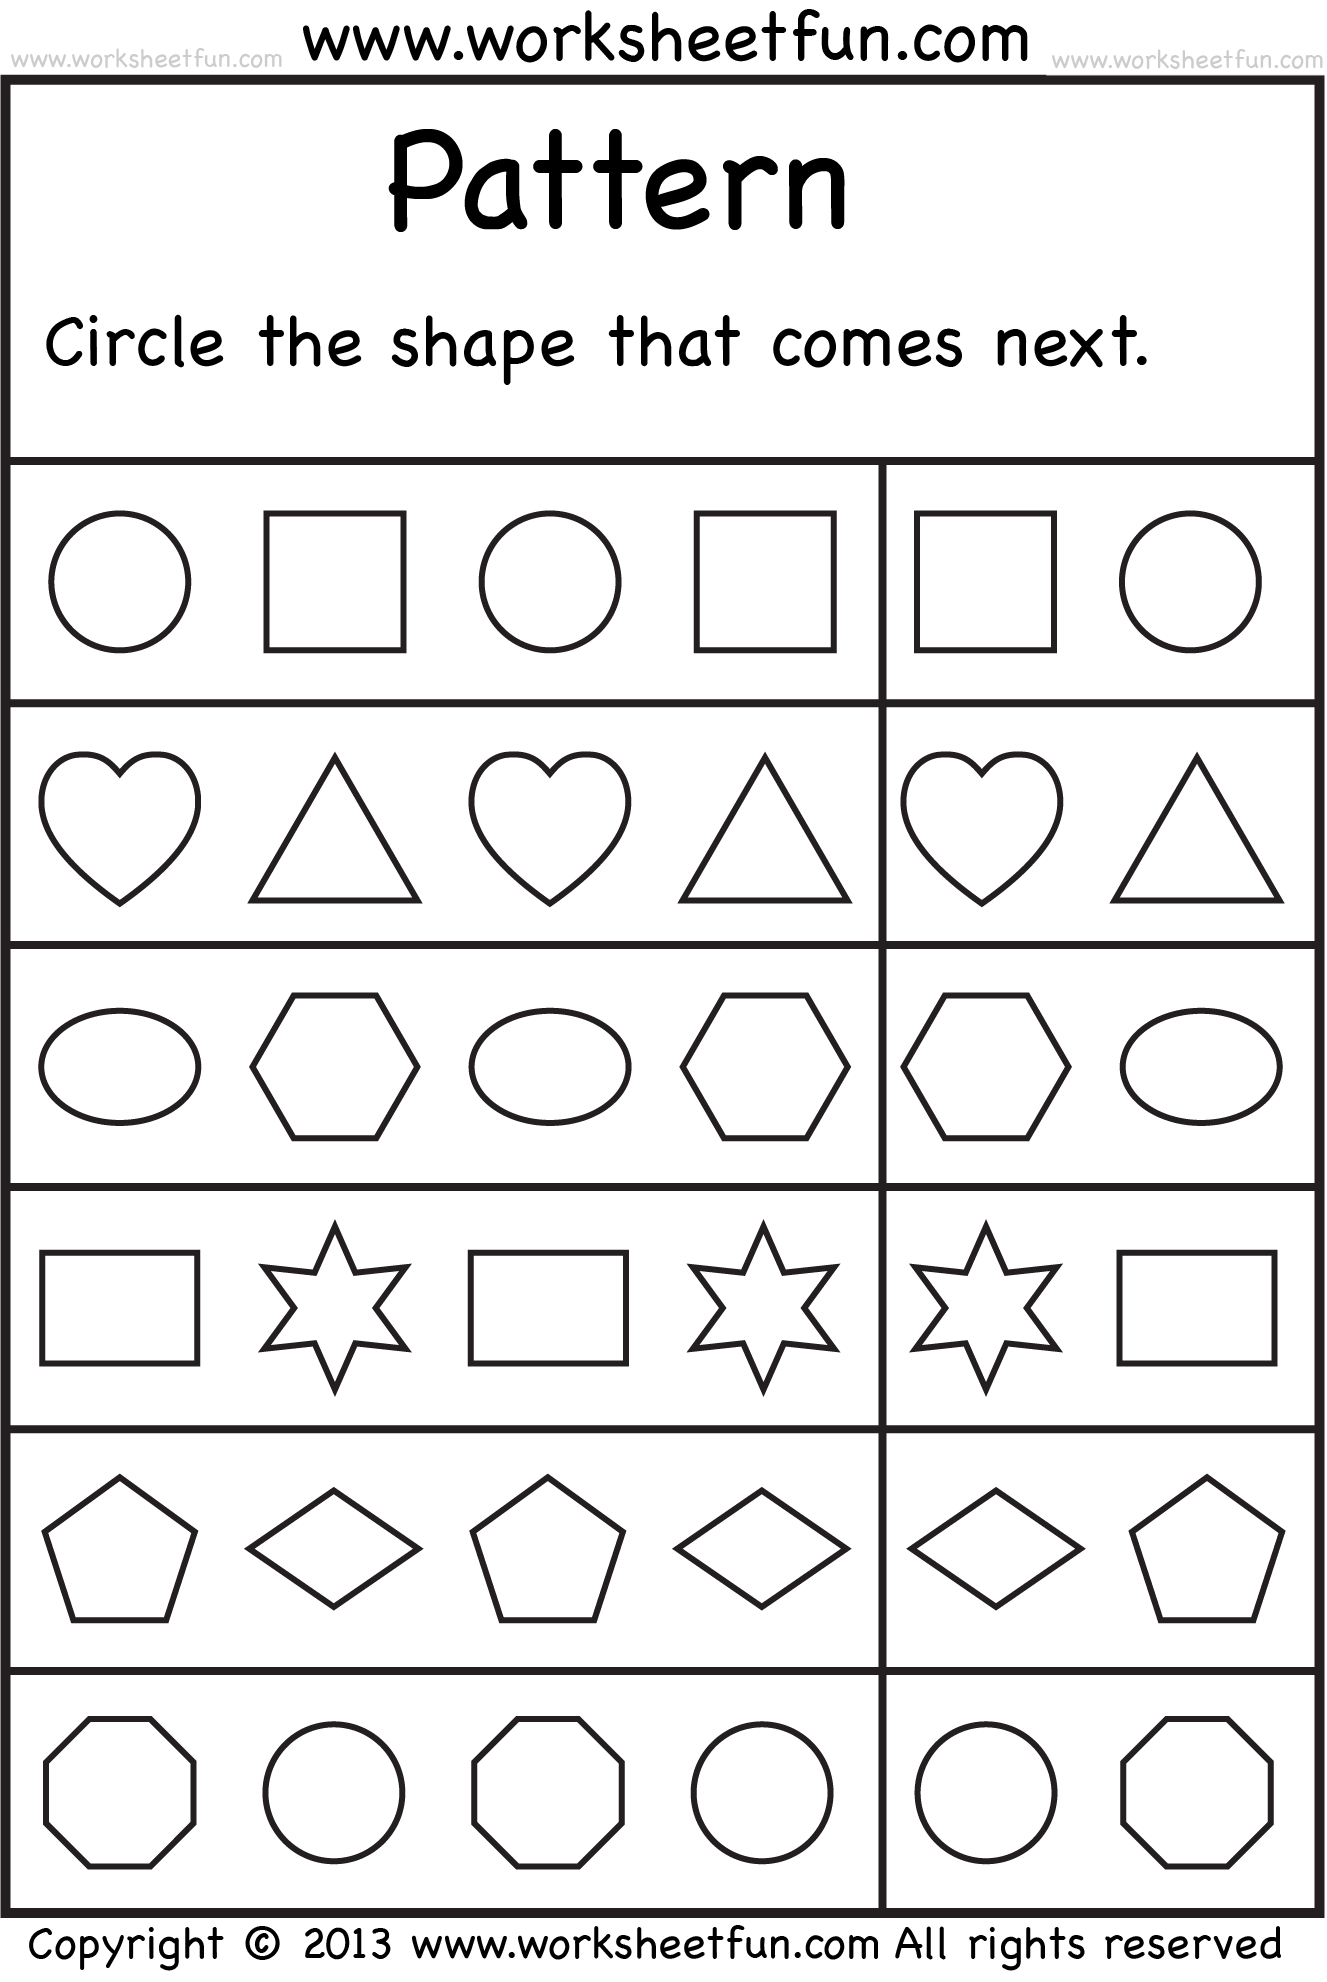 Aldiablosus  Outstanding  Images About School Worksheets On Pinterest  Number Words  With Great  Images About School Worksheets On Pinterest  Number Words Alphabet Worksheets And Free Printable Kindergarten Worksheets With Archaic Metric Units Of Measurement Worksheets Also Worksheet On Place Value In Addition Subtraction And Addition Worksheet And Esl Life Skills Worksheets As Well As Imperative Worksheet Additionally Hidden Picture Printable Worksheets From Pinterestcom With Aldiablosus  Great  Images About School Worksheets On Pinterest  Number Words  With Archaic  Images About School Worksheets On Pinterest  Number Words Alphabet Worksheets And Free Printable Kindergarten Worksheets And Outstanding Metric Units Of Measurement Worksheets Also Worksheet On Place Value In Addition Subtraction And Addition Worksheet From Pinterestcom